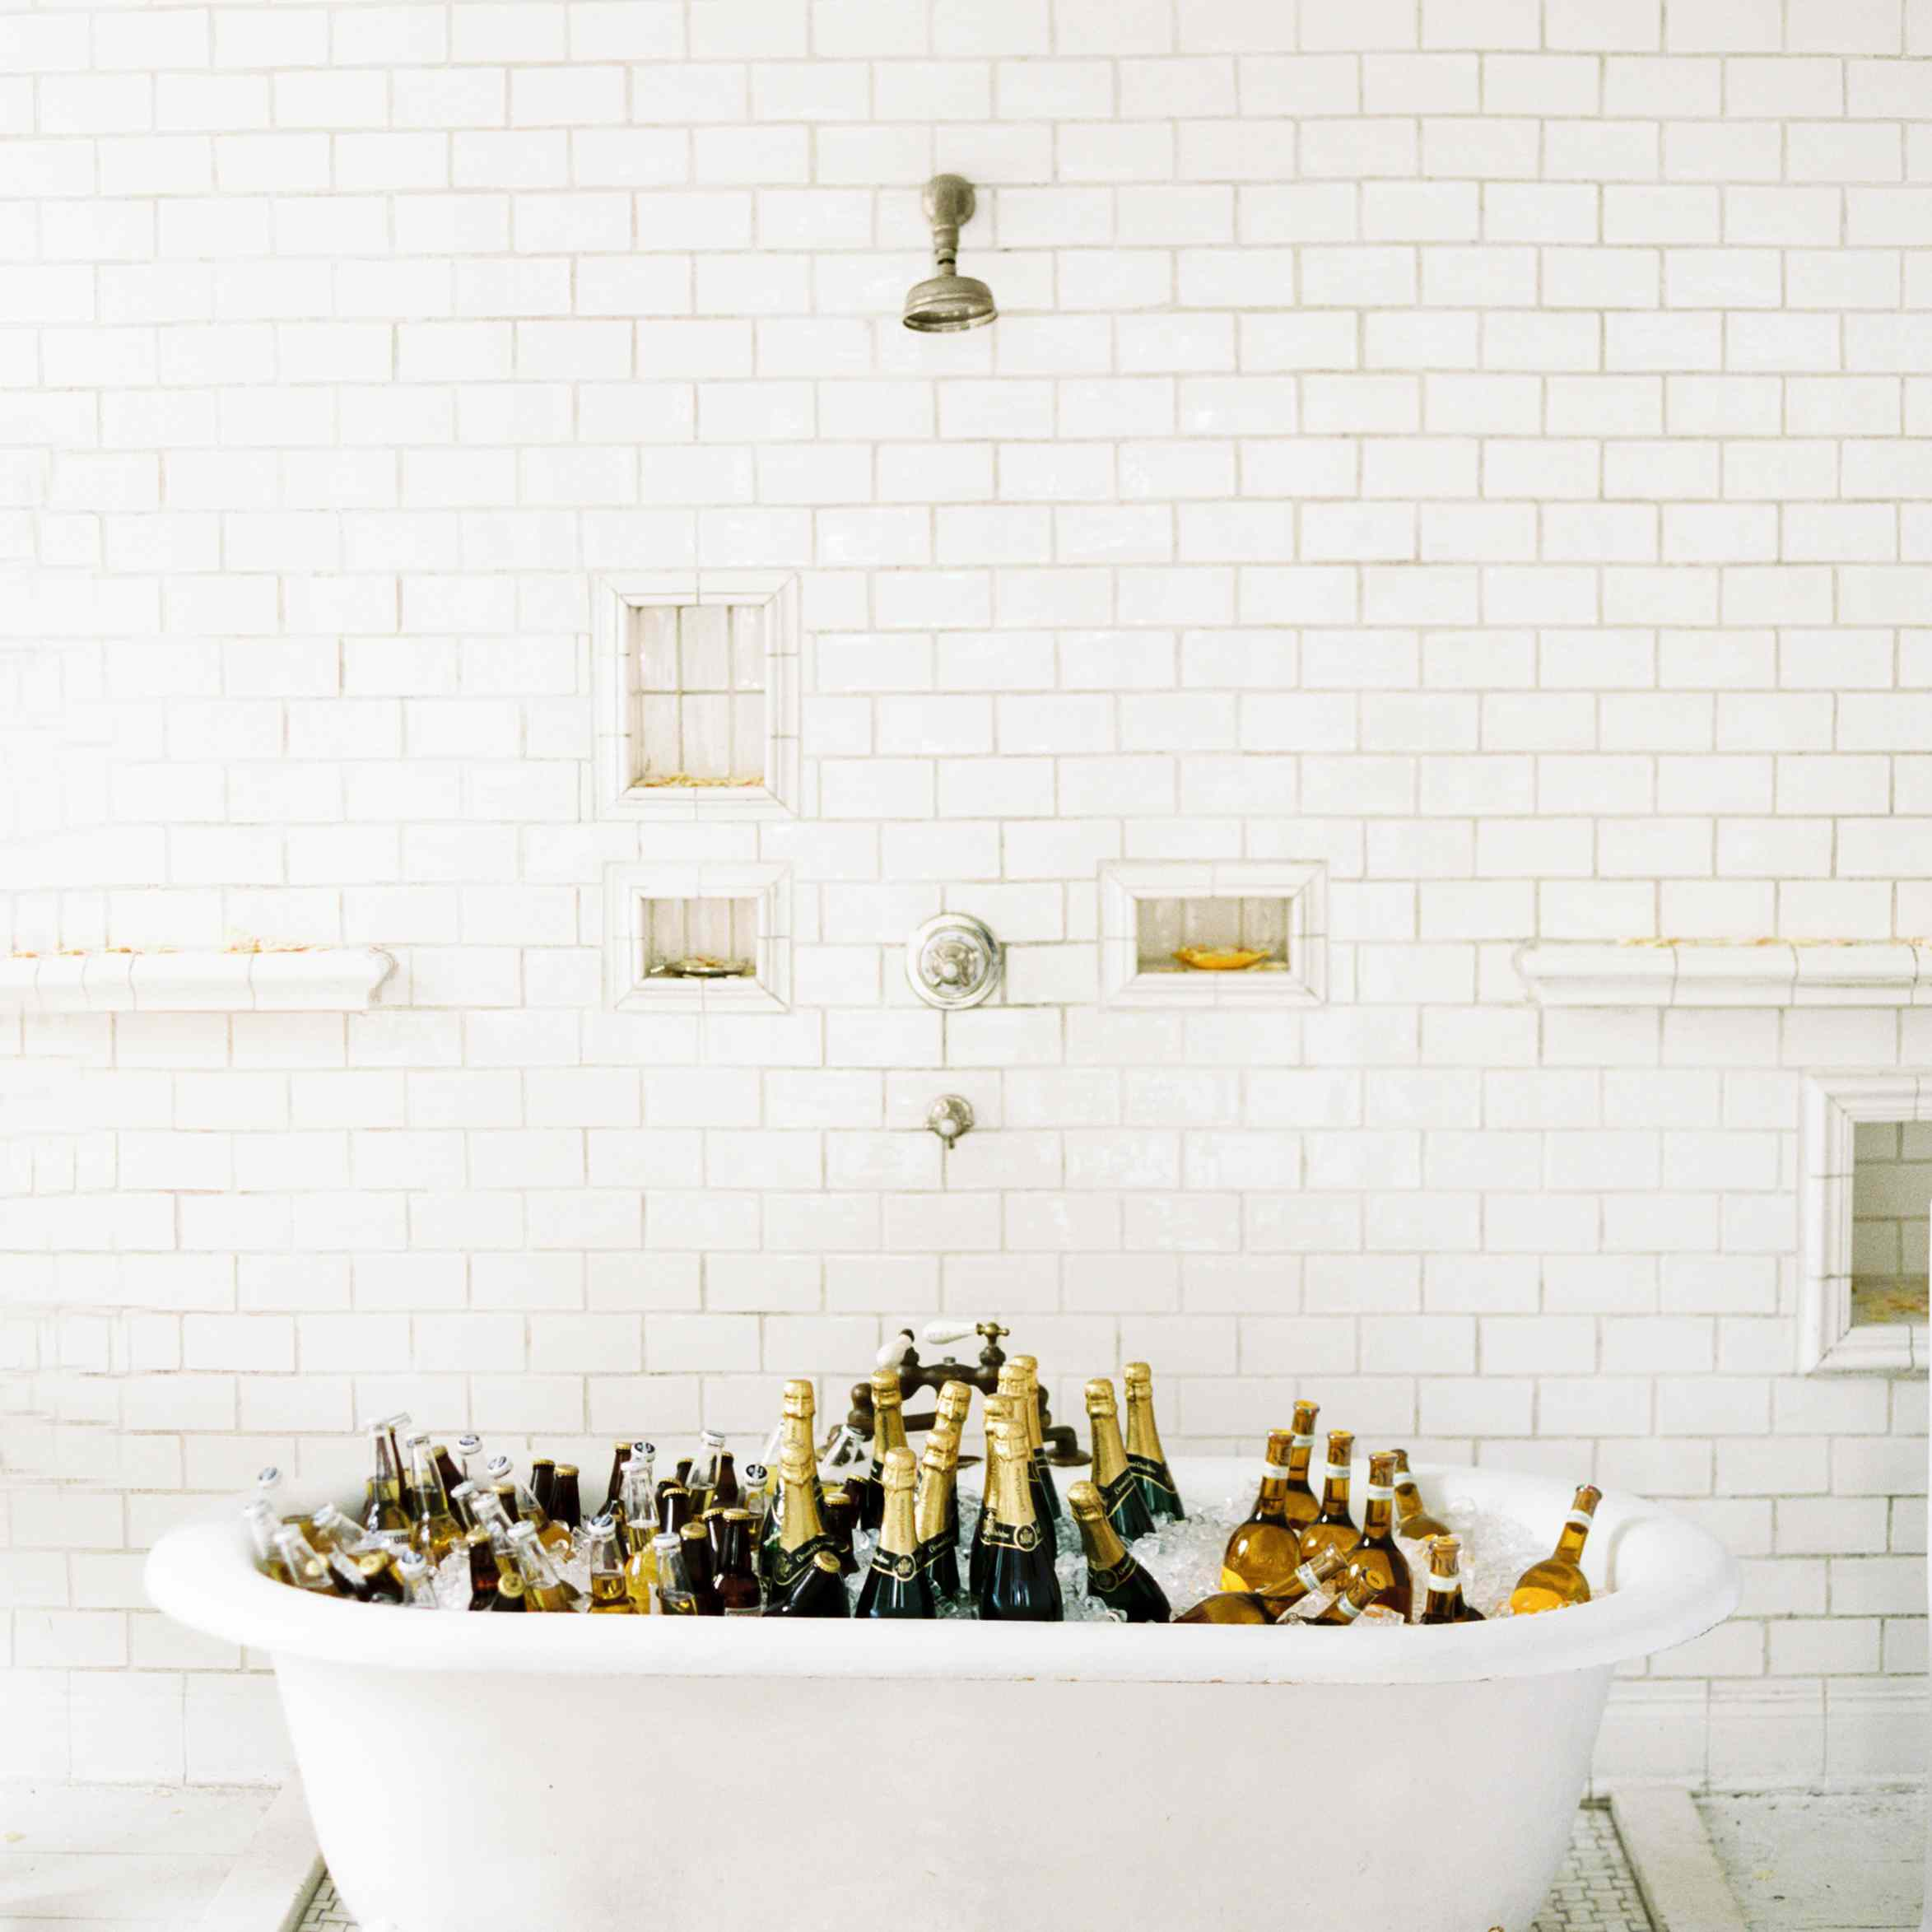 Bathtub filled with champagne